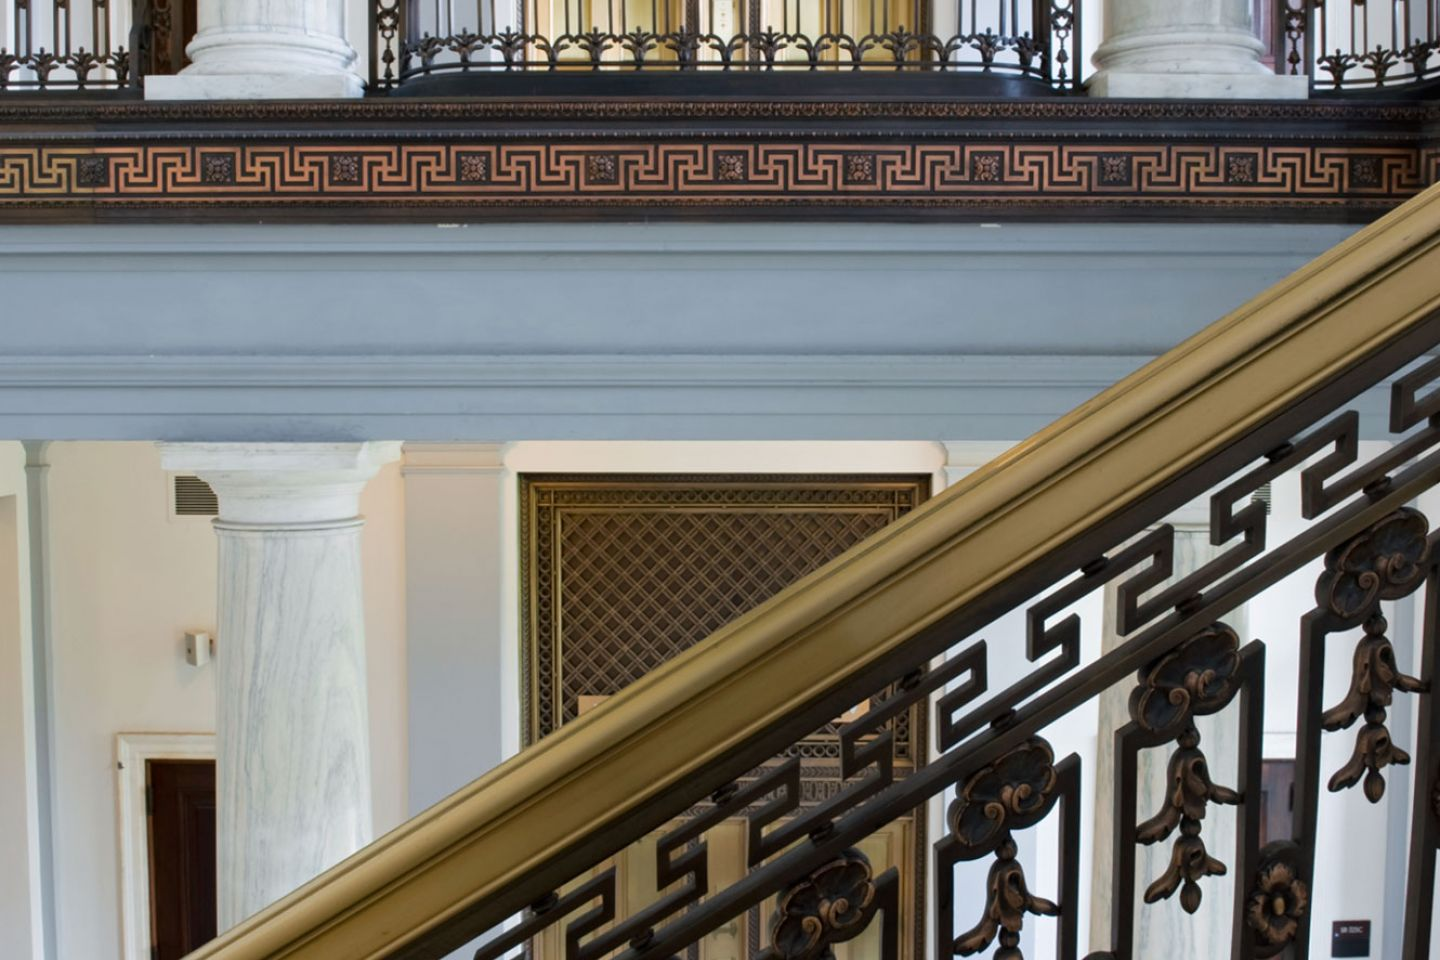 View of elevators and stair railings inside the Russell Senate Office Building.